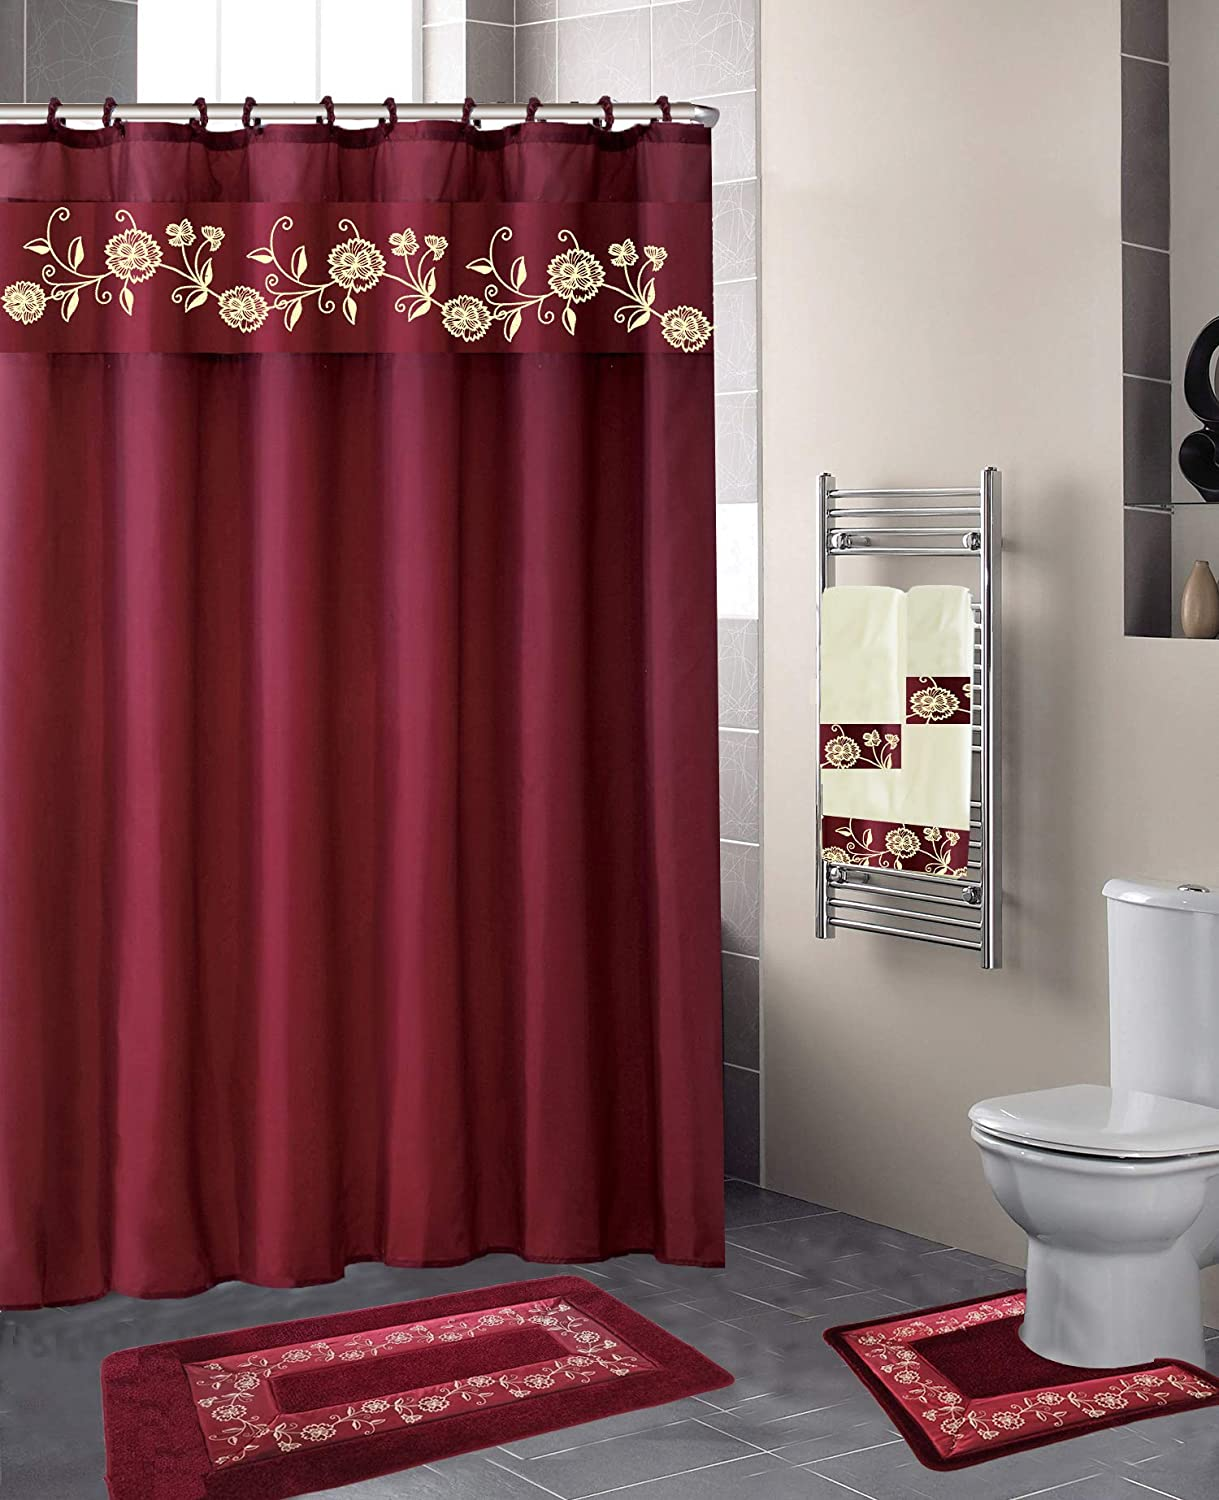 Luxury Home Collection 4 Pc Bath Rug Set Embroidery Non-Slip Bathroom Rug  Mats And Rug Contour And Shower Curtain And Towels And Rings Hooks And